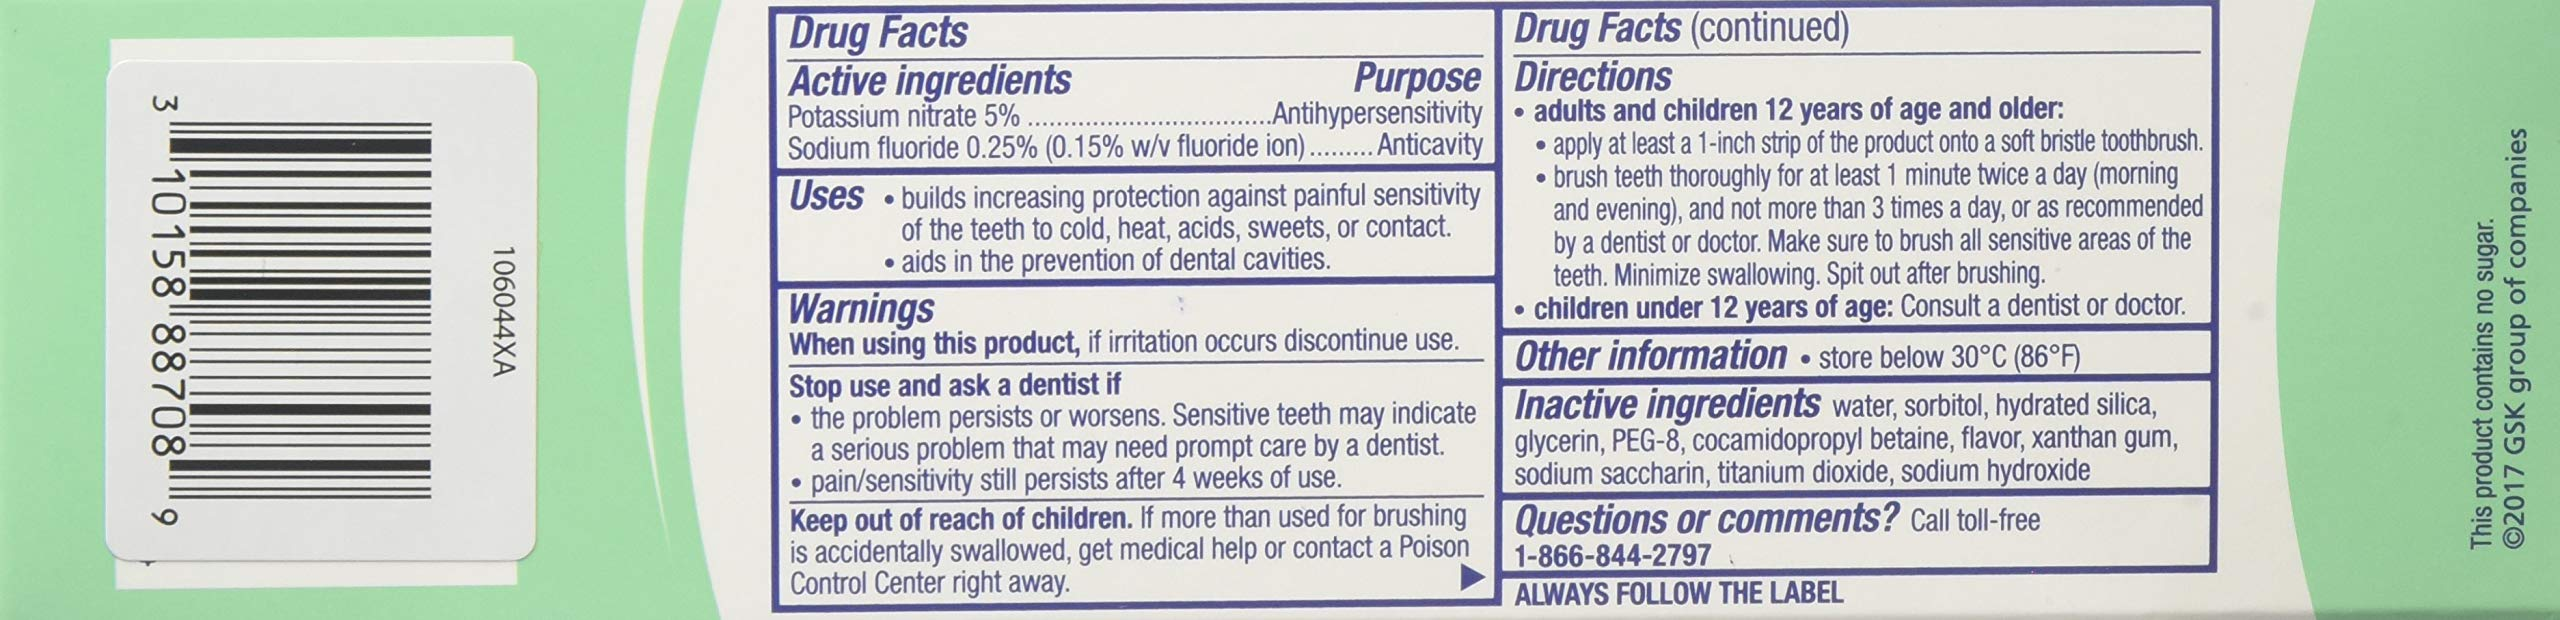 Sensodyne Pronamel Toothpaste for Tooth Enamel Strengthening, Daily Protection, Mint Essence, 4 Ounce (Pack of 3) (Packaging May Vary) by SENSODYNE PRONAMEL